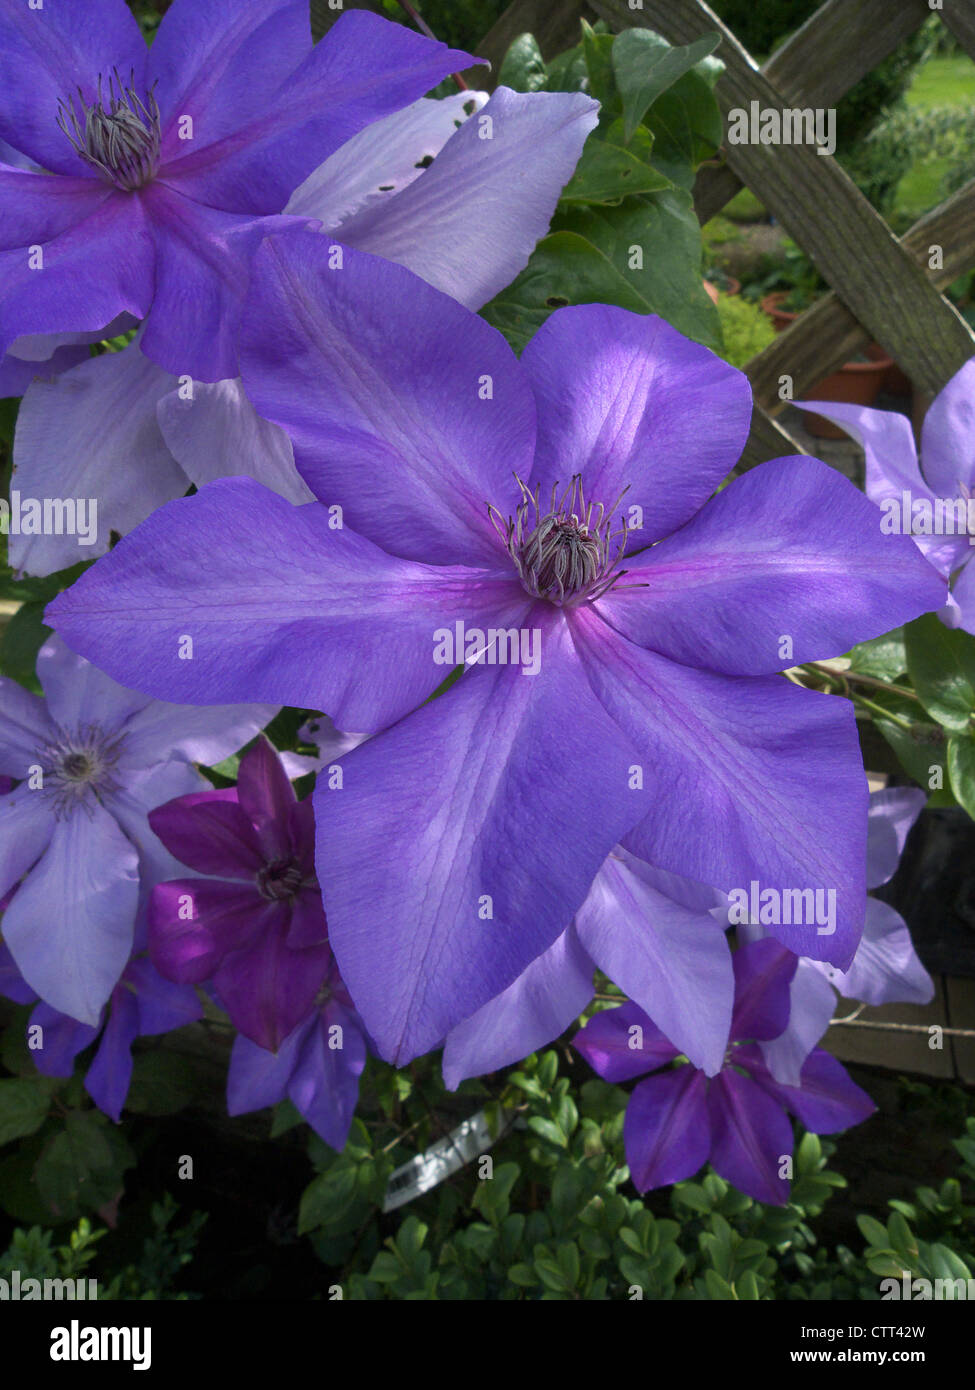 Clematis 'Shimmer' - Stock Image